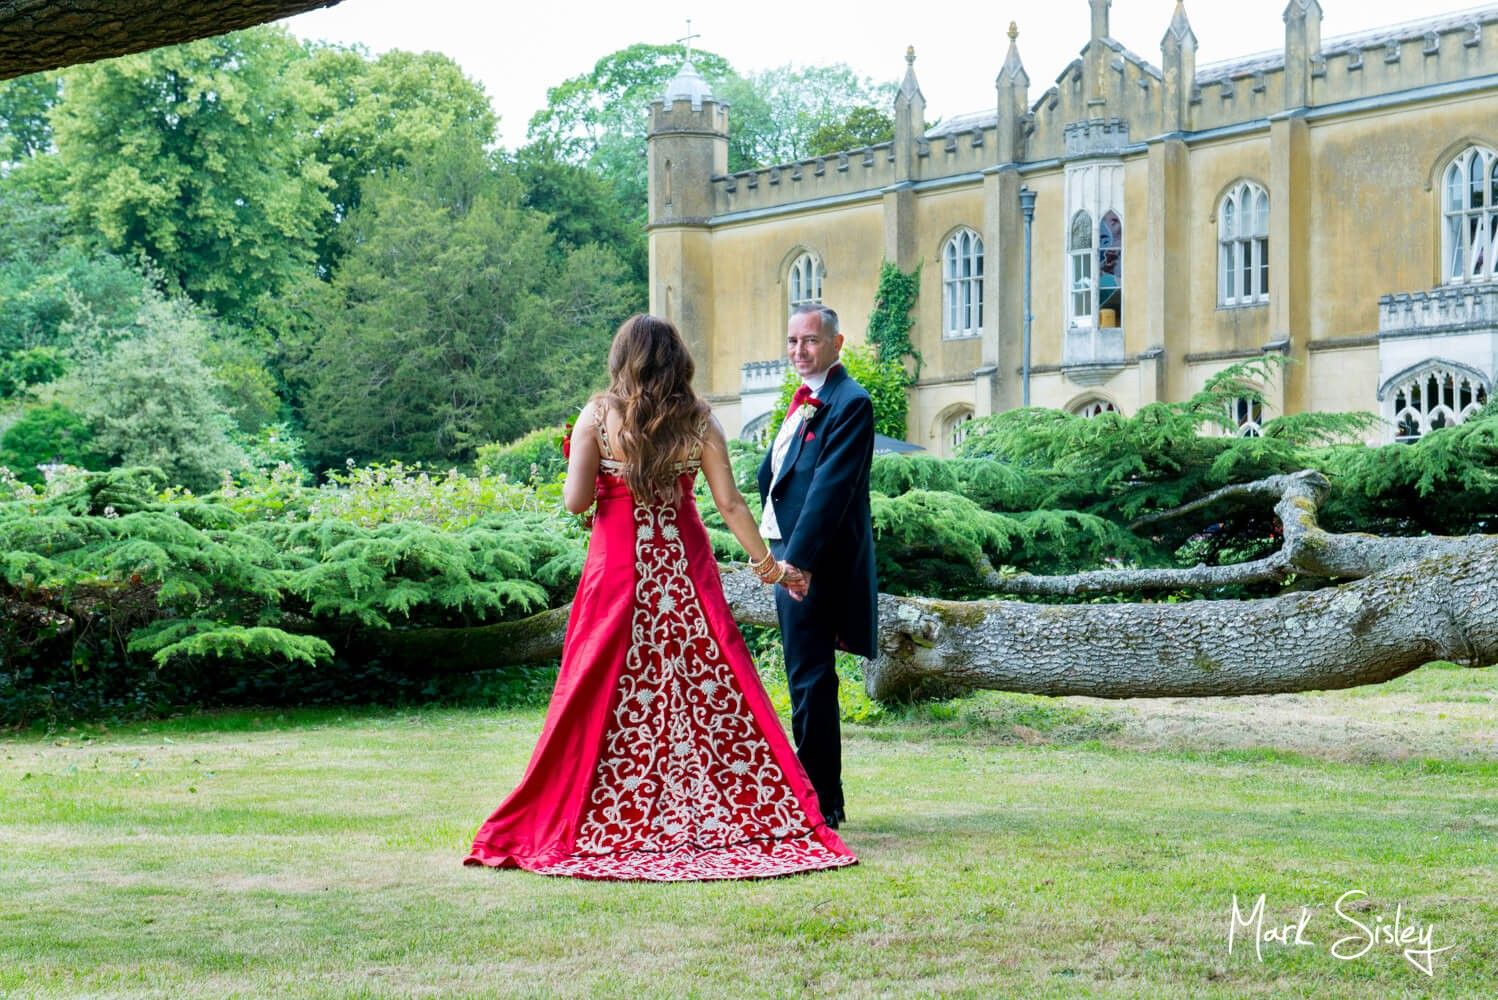 Missenden Abbey wedding blog - Newlyweds in the abbey grounds